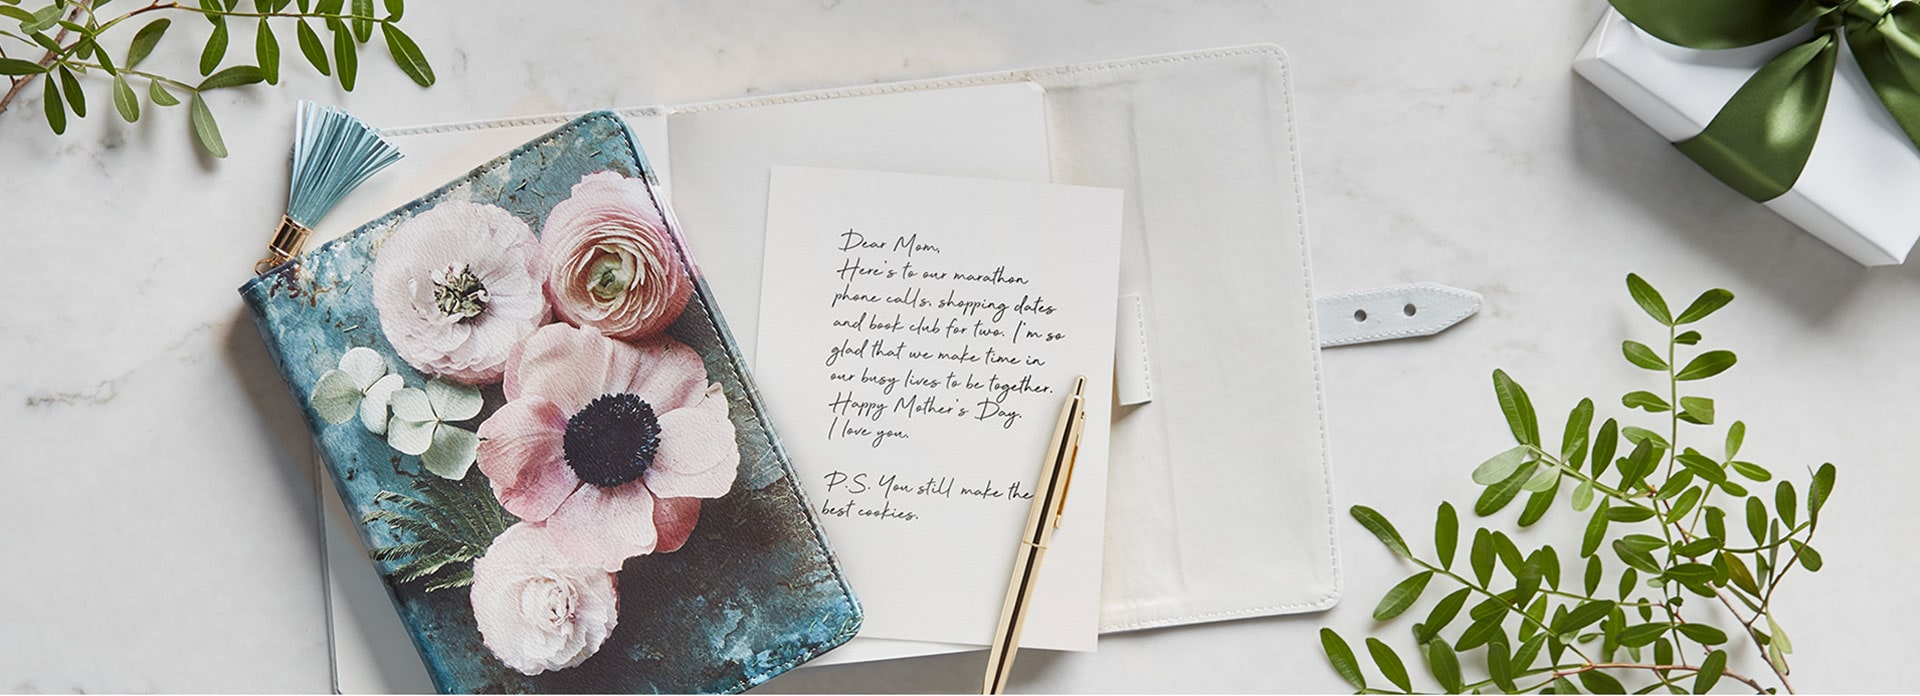 A journal with a letter written in it lies open on a table and a floral journal is on top with a pen next to it.